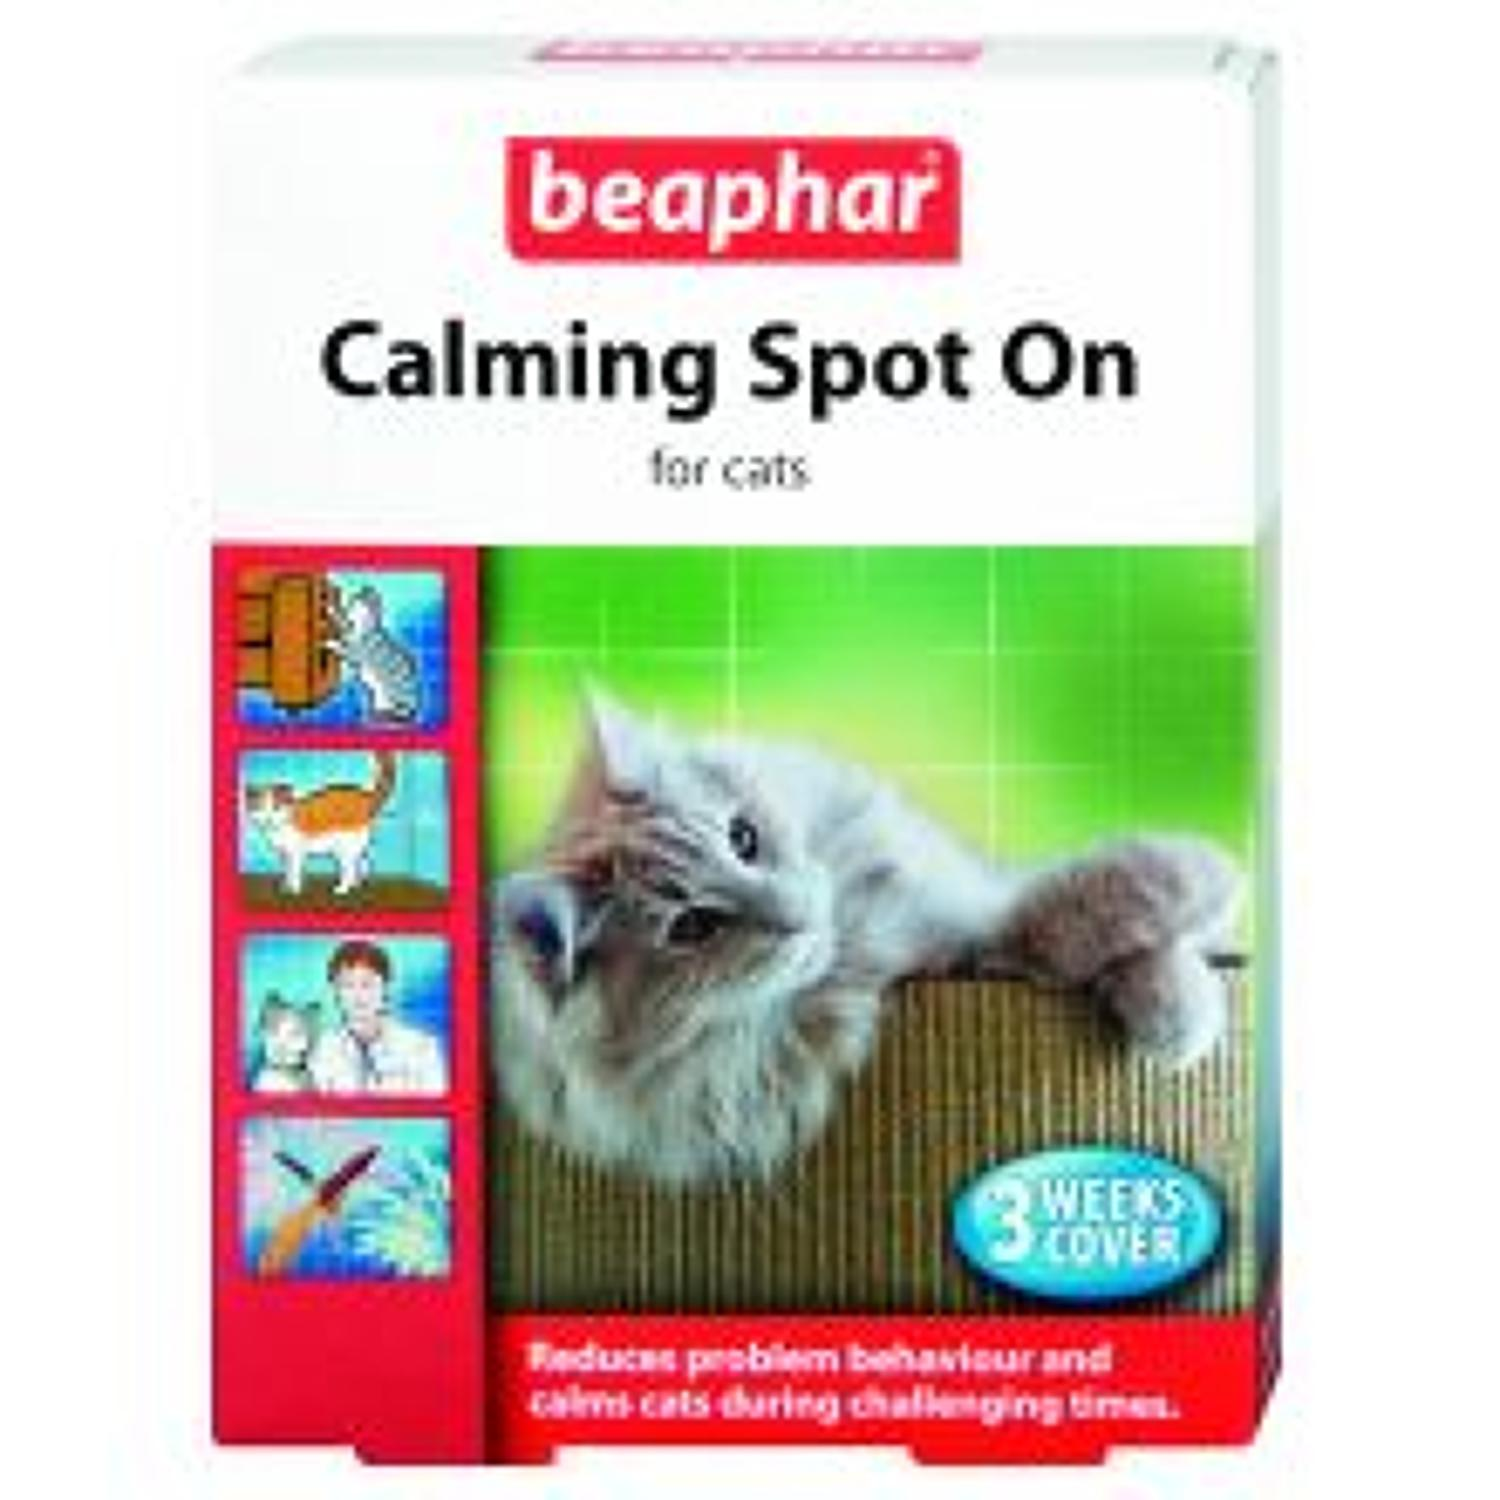 Beaphar Calming Spot On Cats 3week